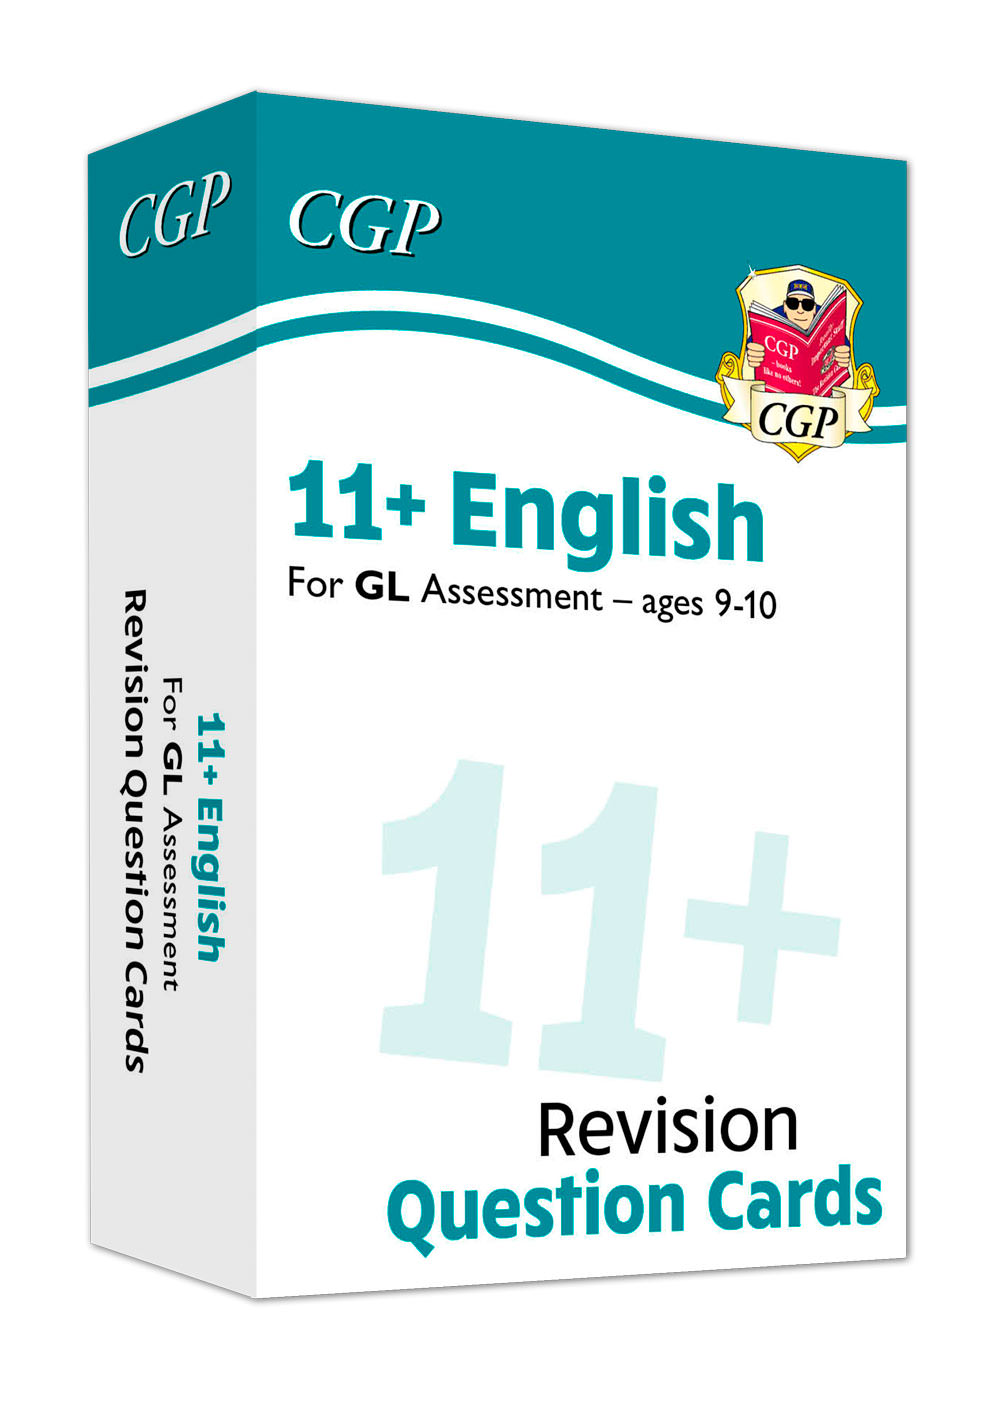 E5FE1 - New 11+ GL Revision Question Cards: English - Ages 9-10